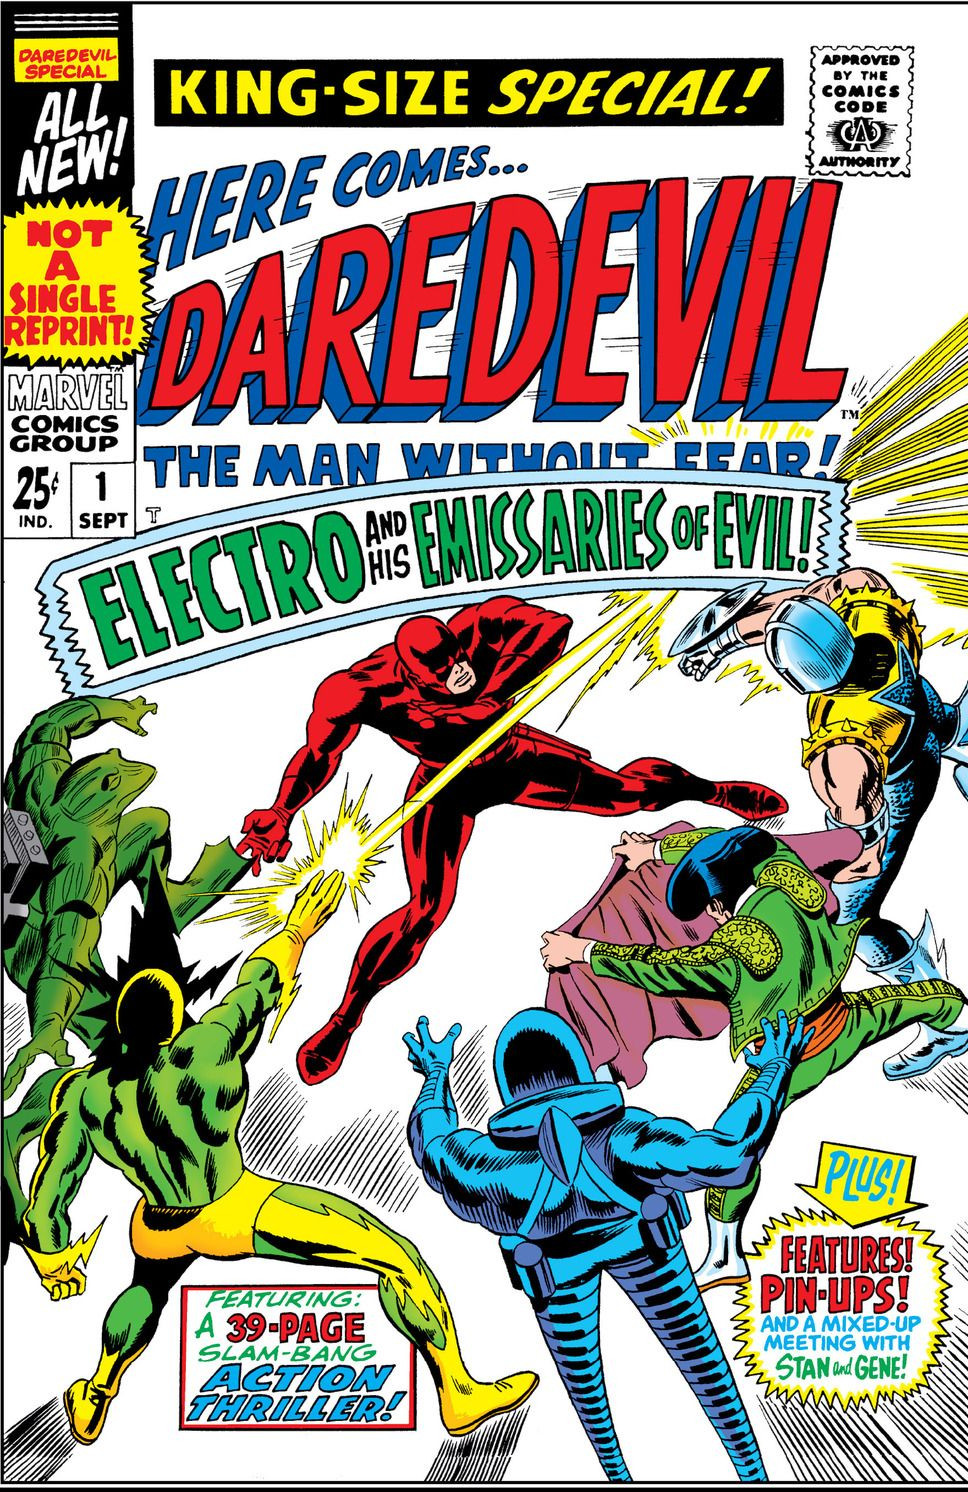 Emissaries of Evil (Electro) (Earth-616)/Gallery